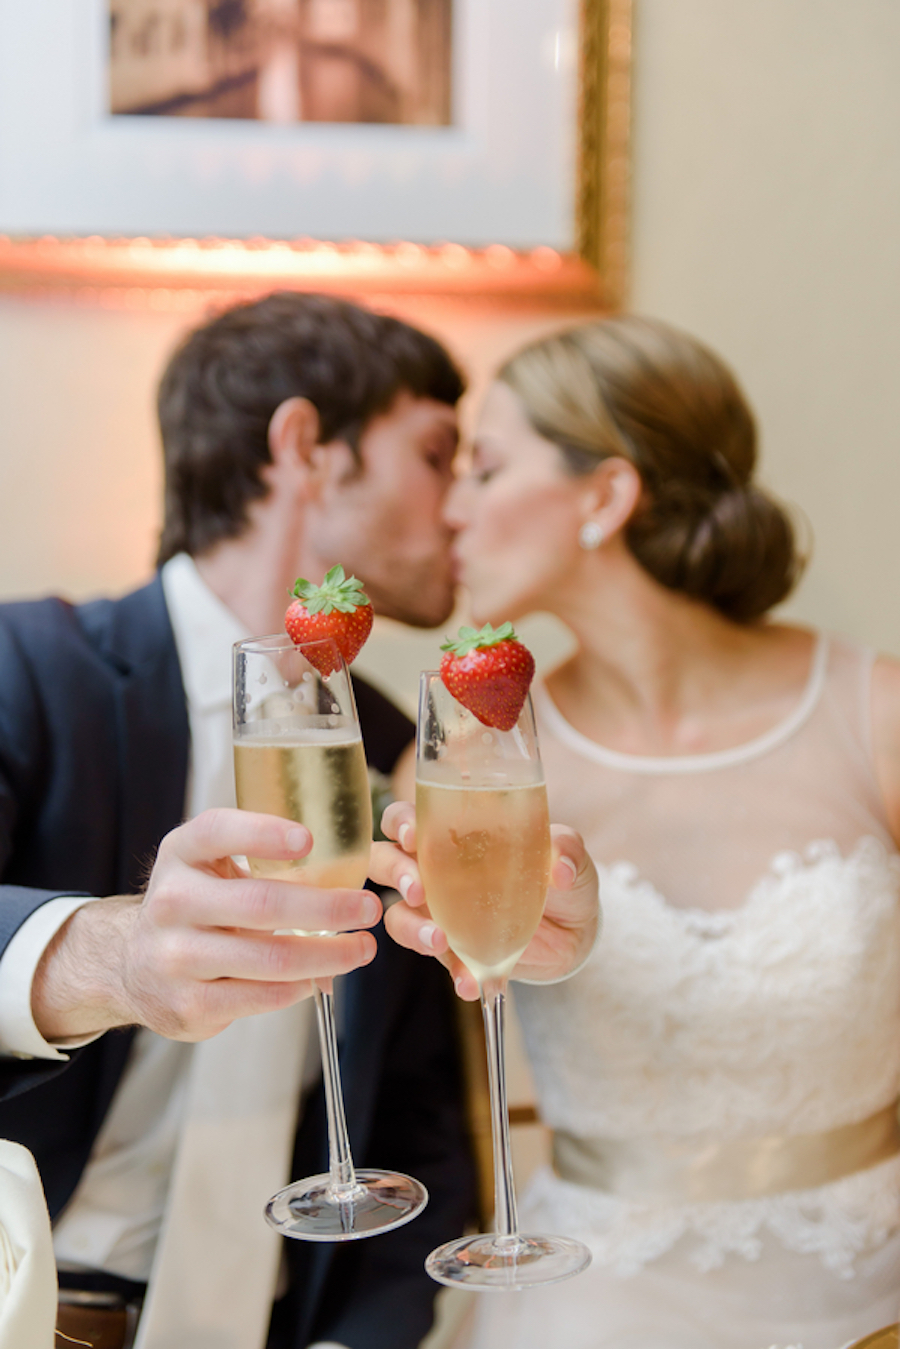 Bride and Groom Portrait Kissing Holding Champagne Glasses with Strawberries